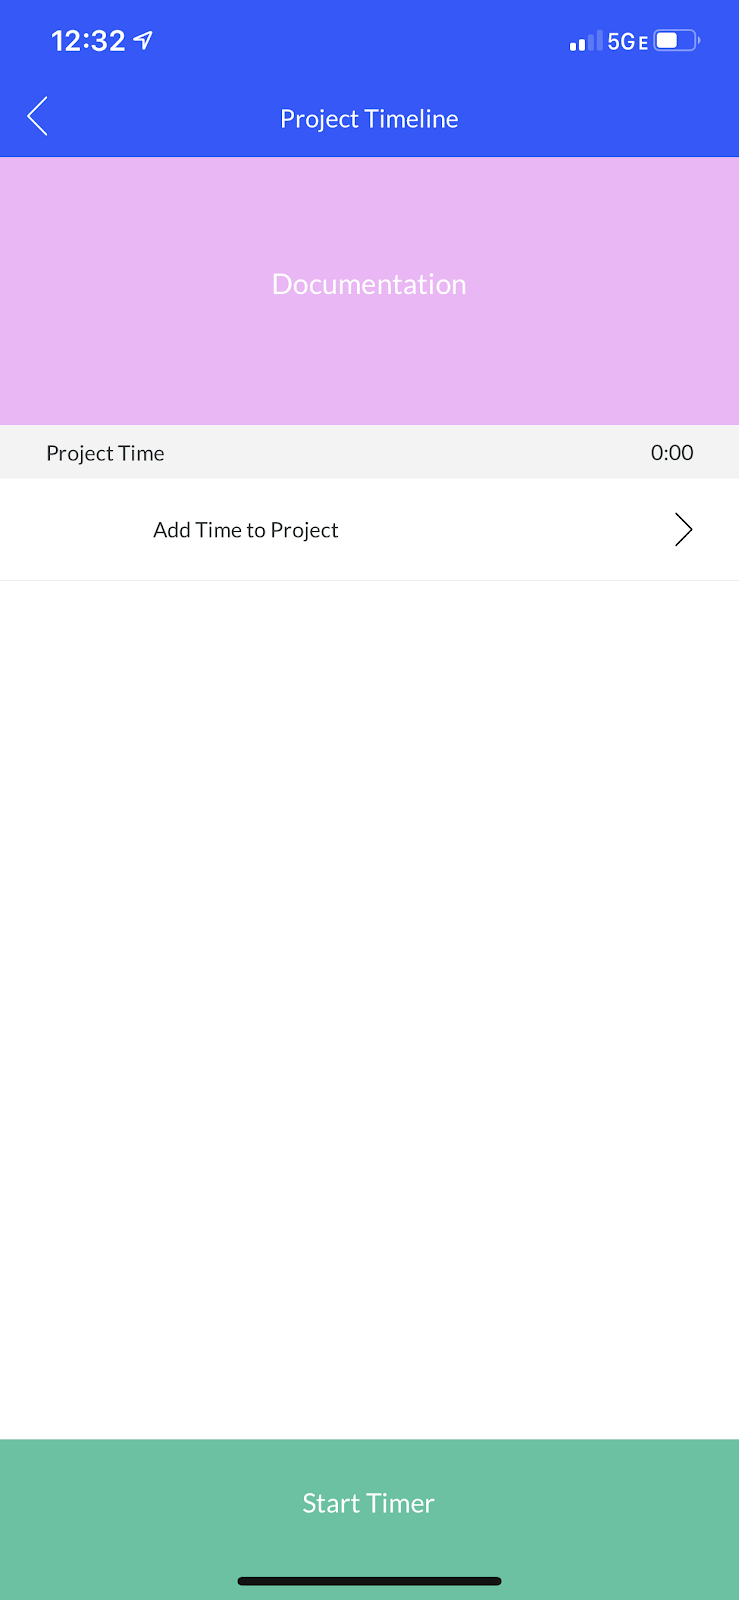 Screenshot showing the Project Timeline screen